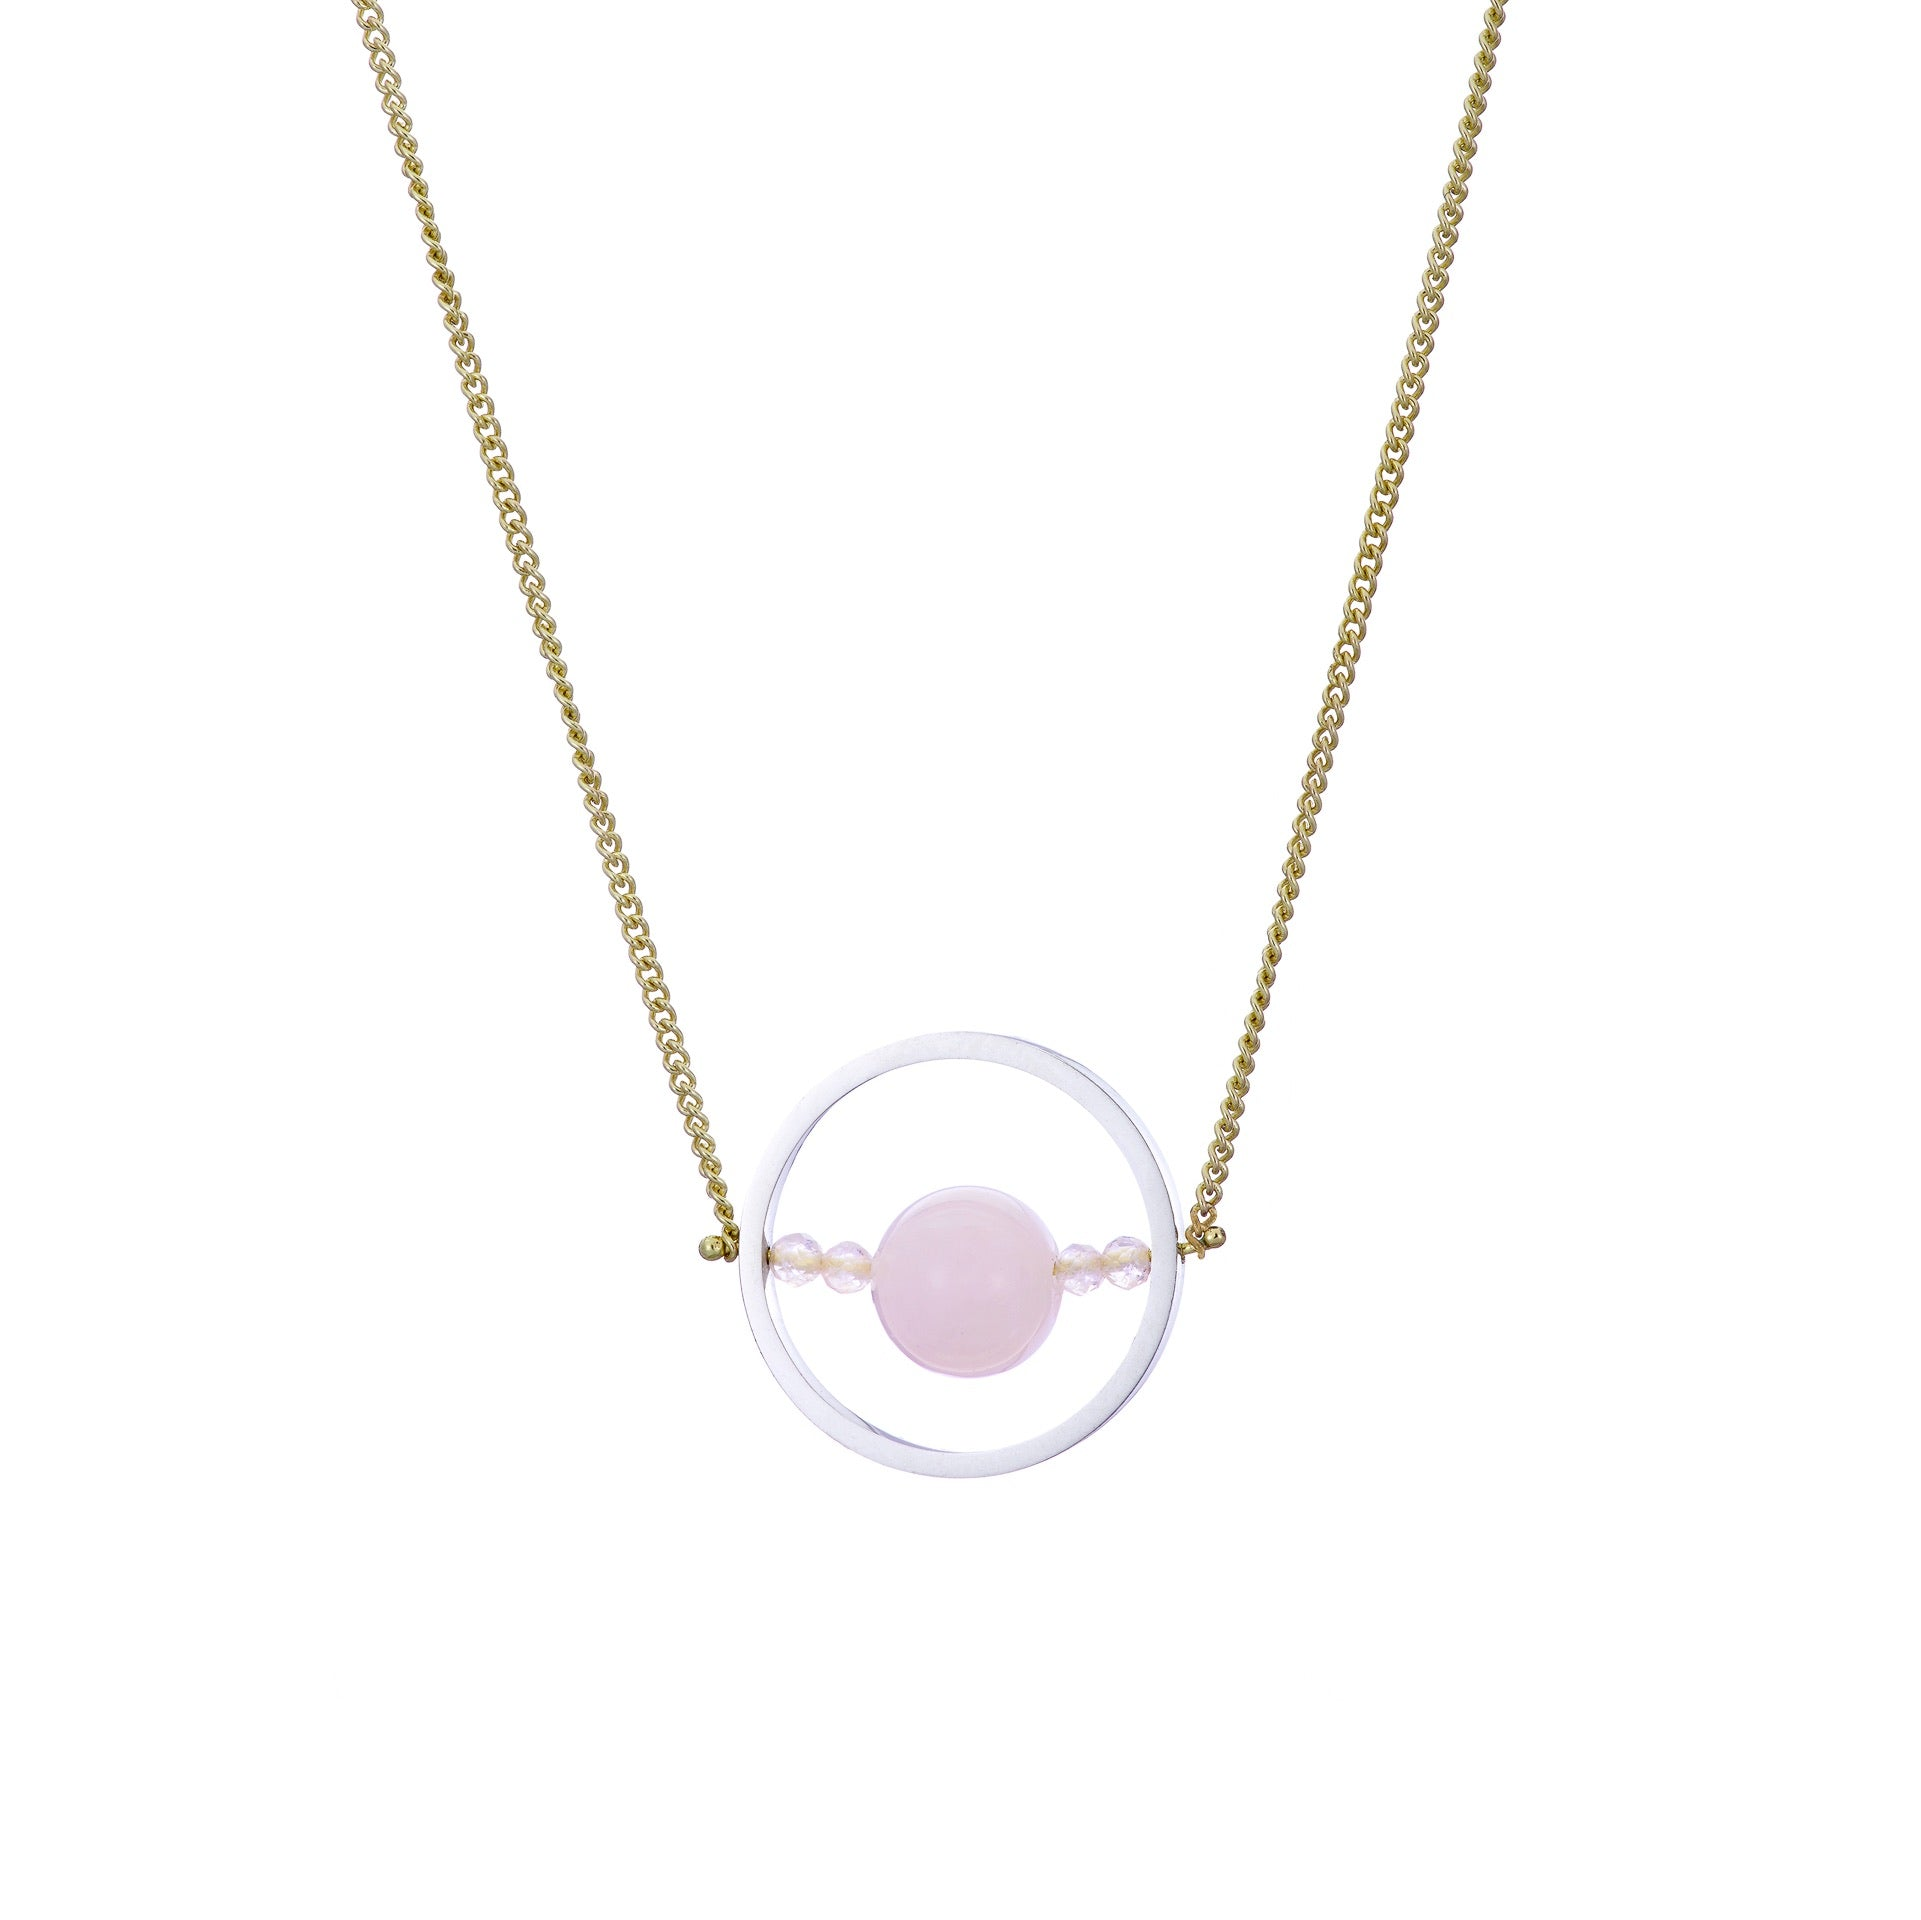 Ice Rink Necklace - Morganite (Pink Beryl), Large